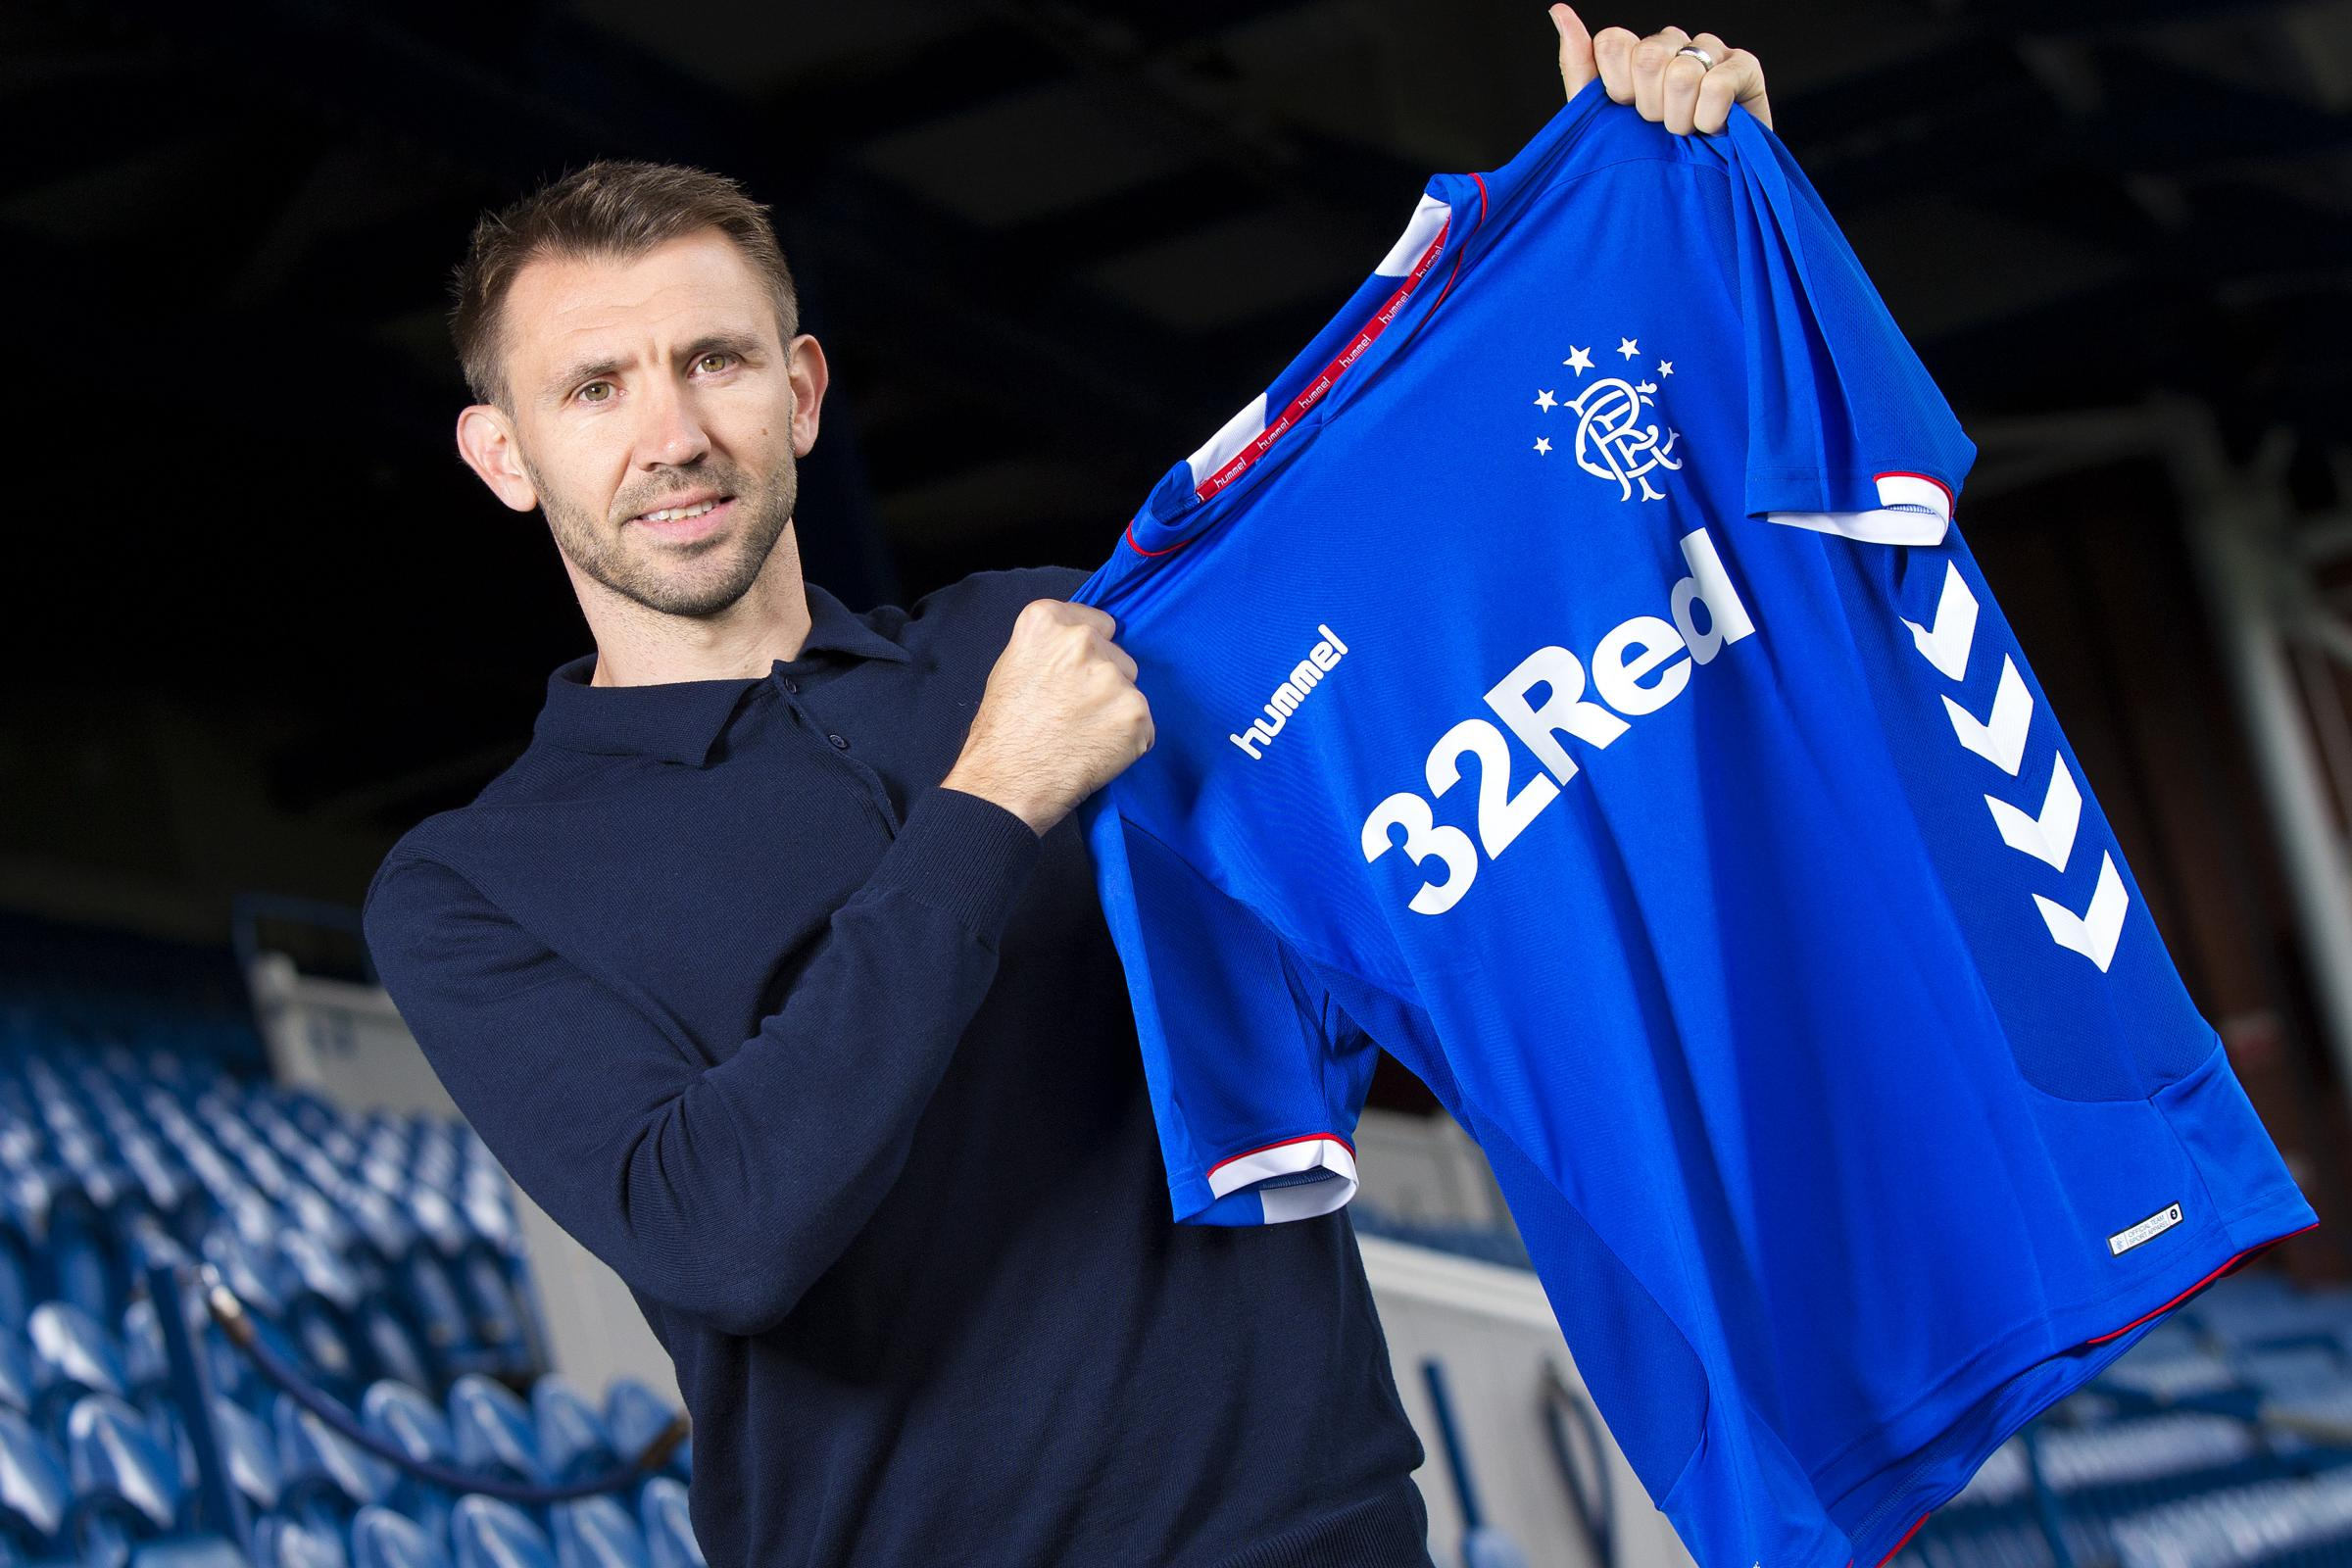 Rangers have signed Gareth McAuley on a one year contract